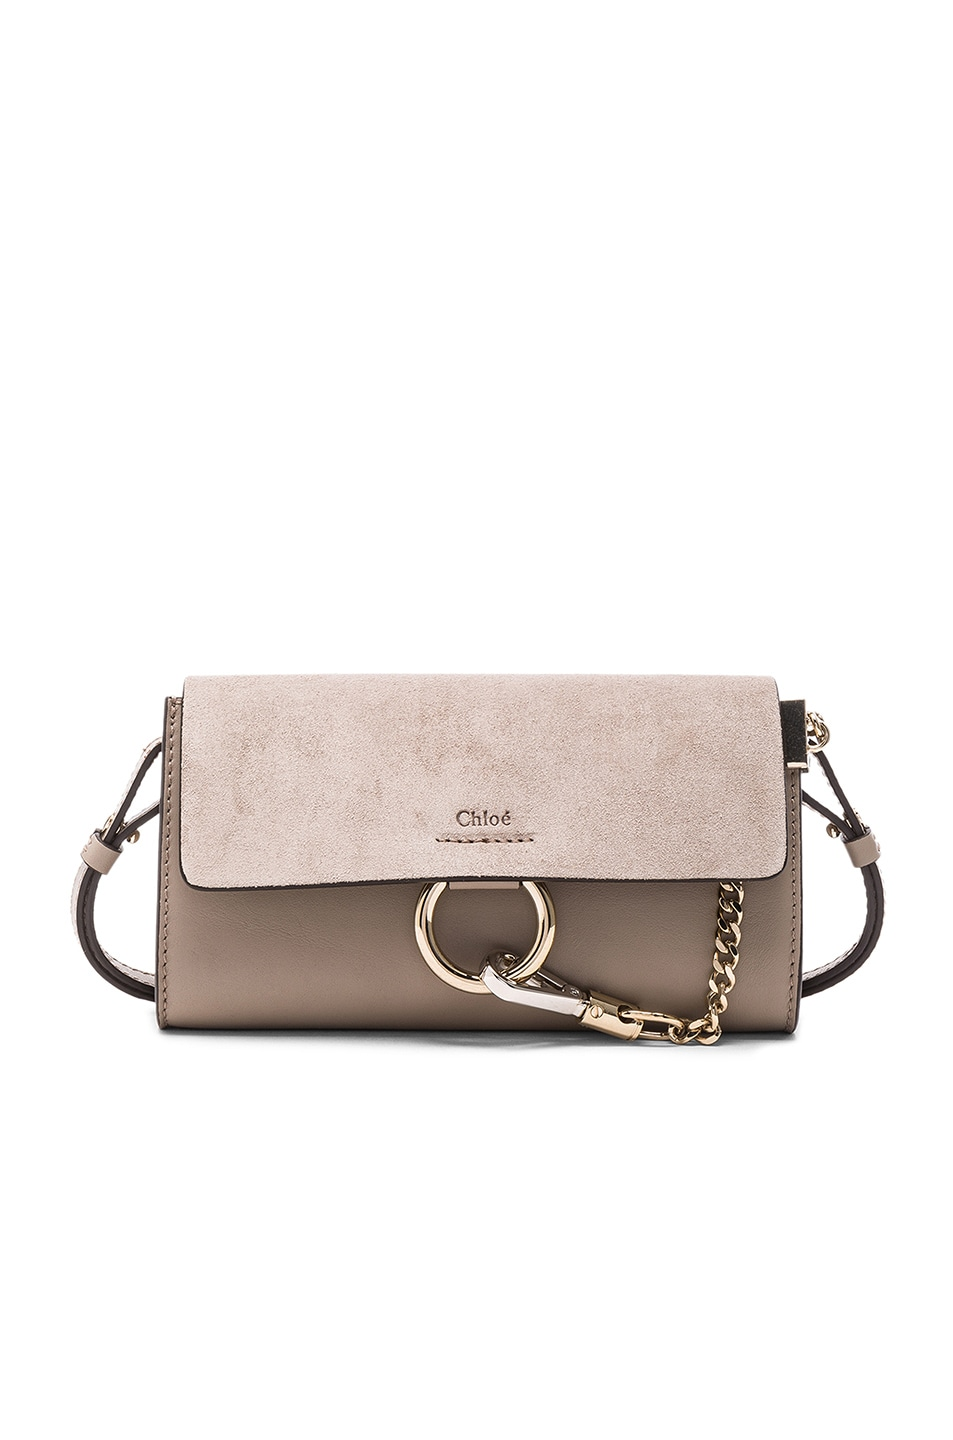 5ef046c76c472 Image 1 of Chloe Leather Faye Suede   Calfskin Strap Wallet in Motty Grey